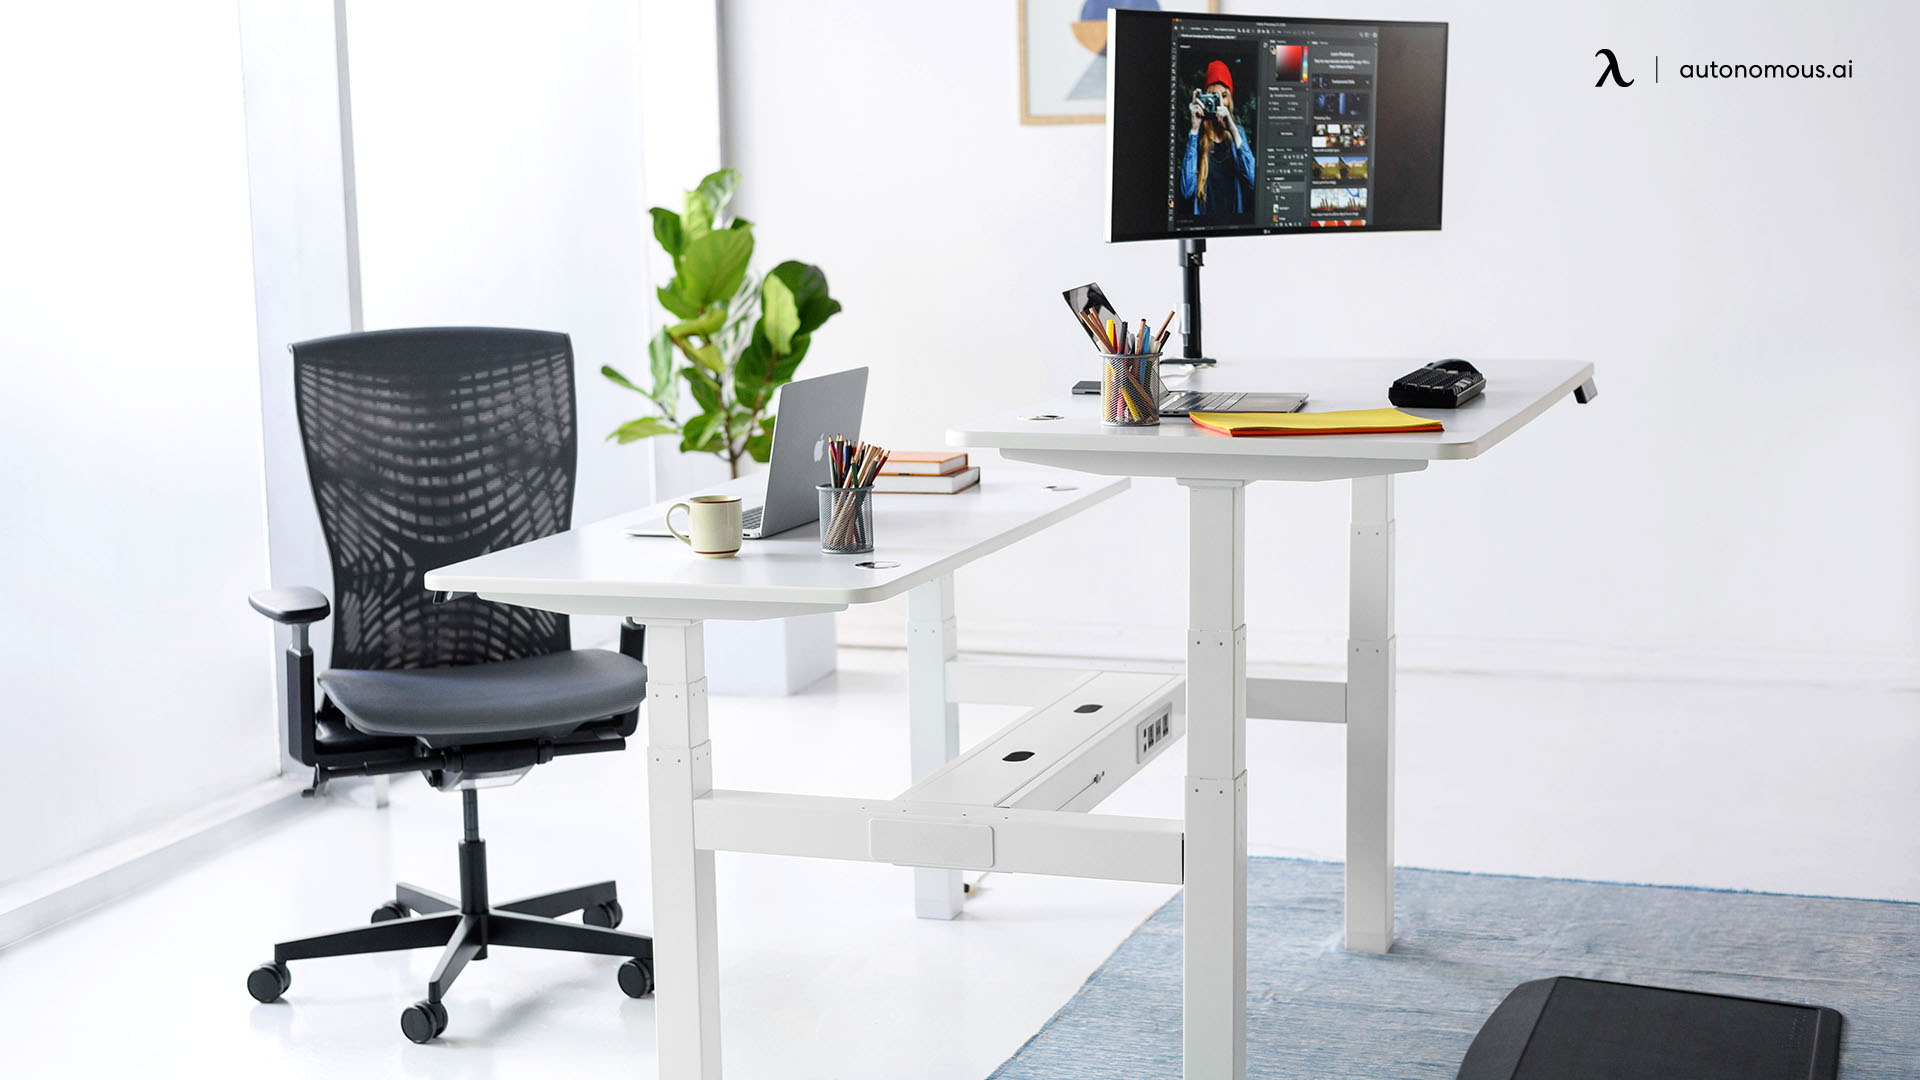 What Are the Cons of a Standing Desk?